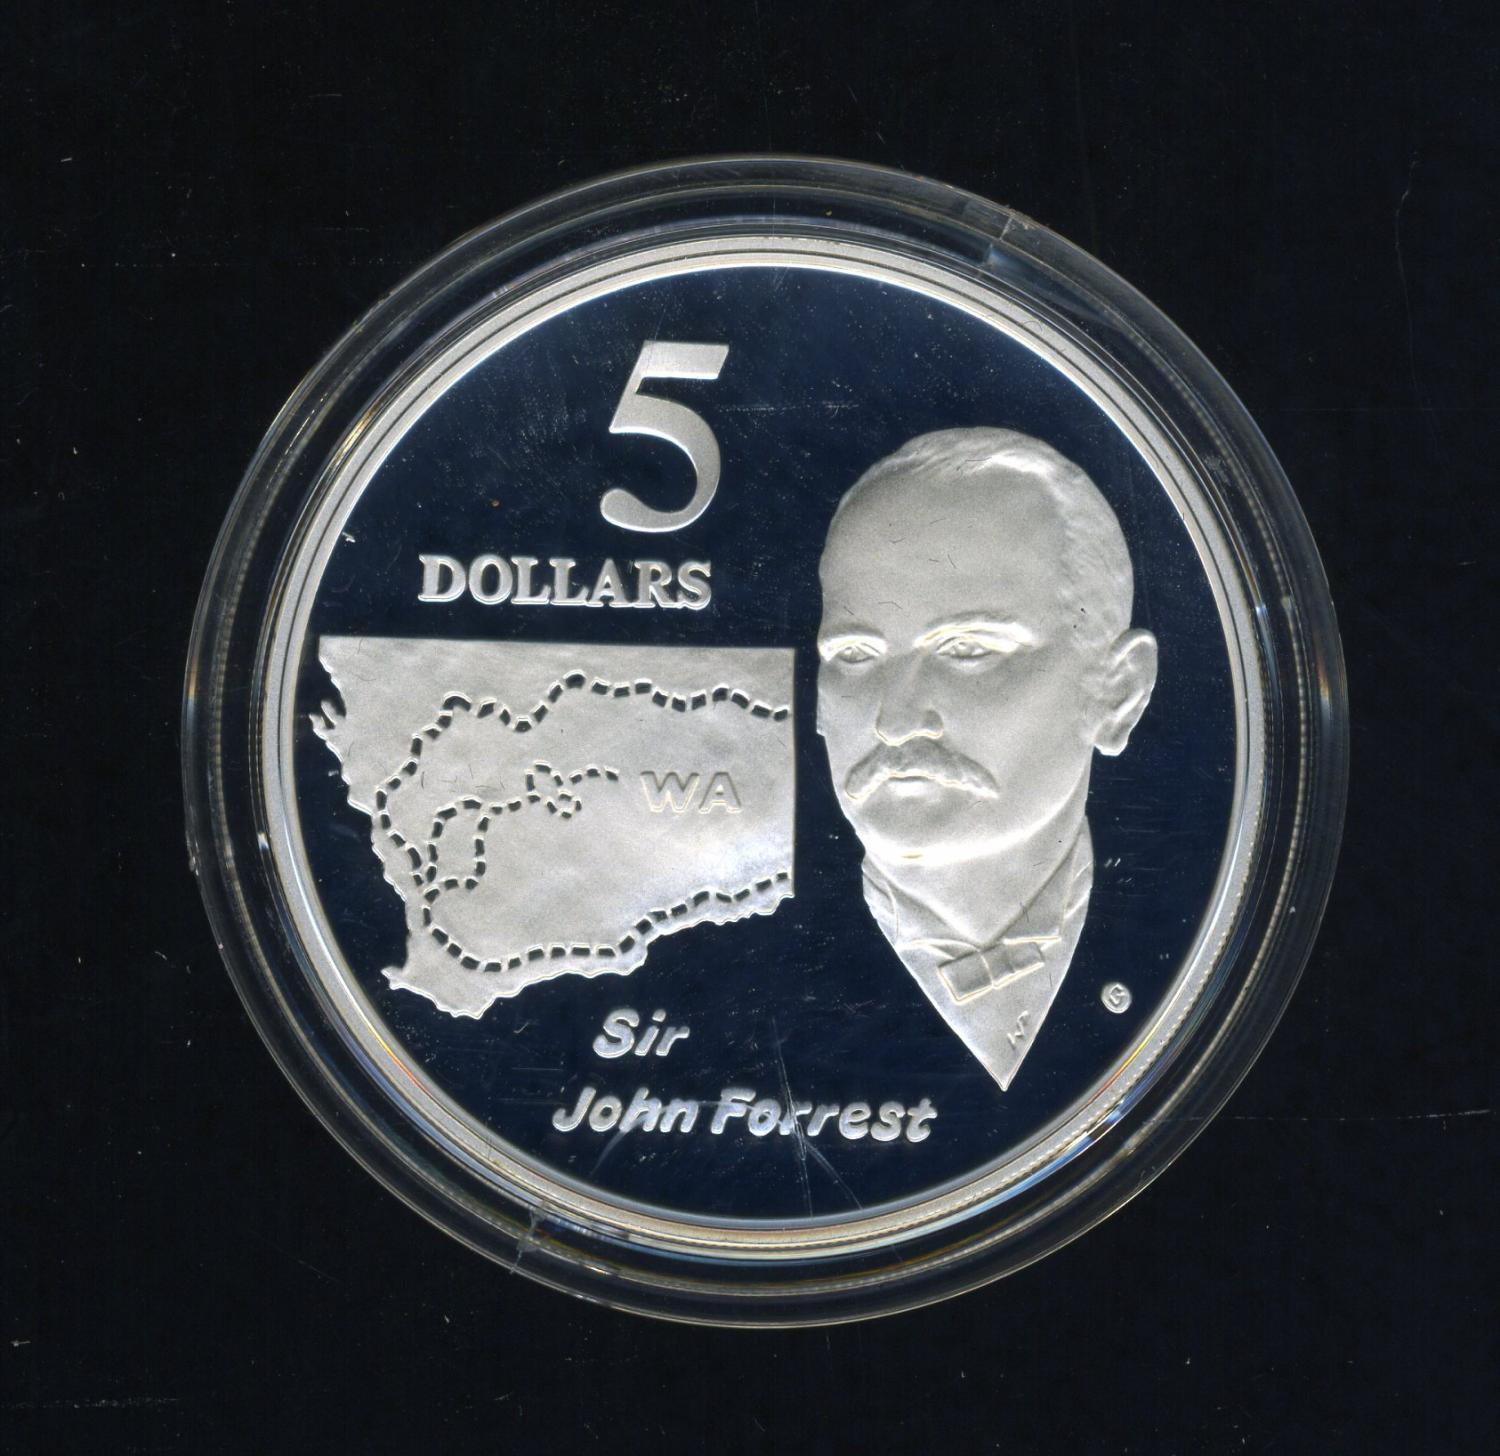 Thumbnail for 1994 Australian $5 Silver Coin From Masterpieces in Silver Set - John Forrest.  The Coin is Sterling Silver and contains over 1oz of Pure Silver.